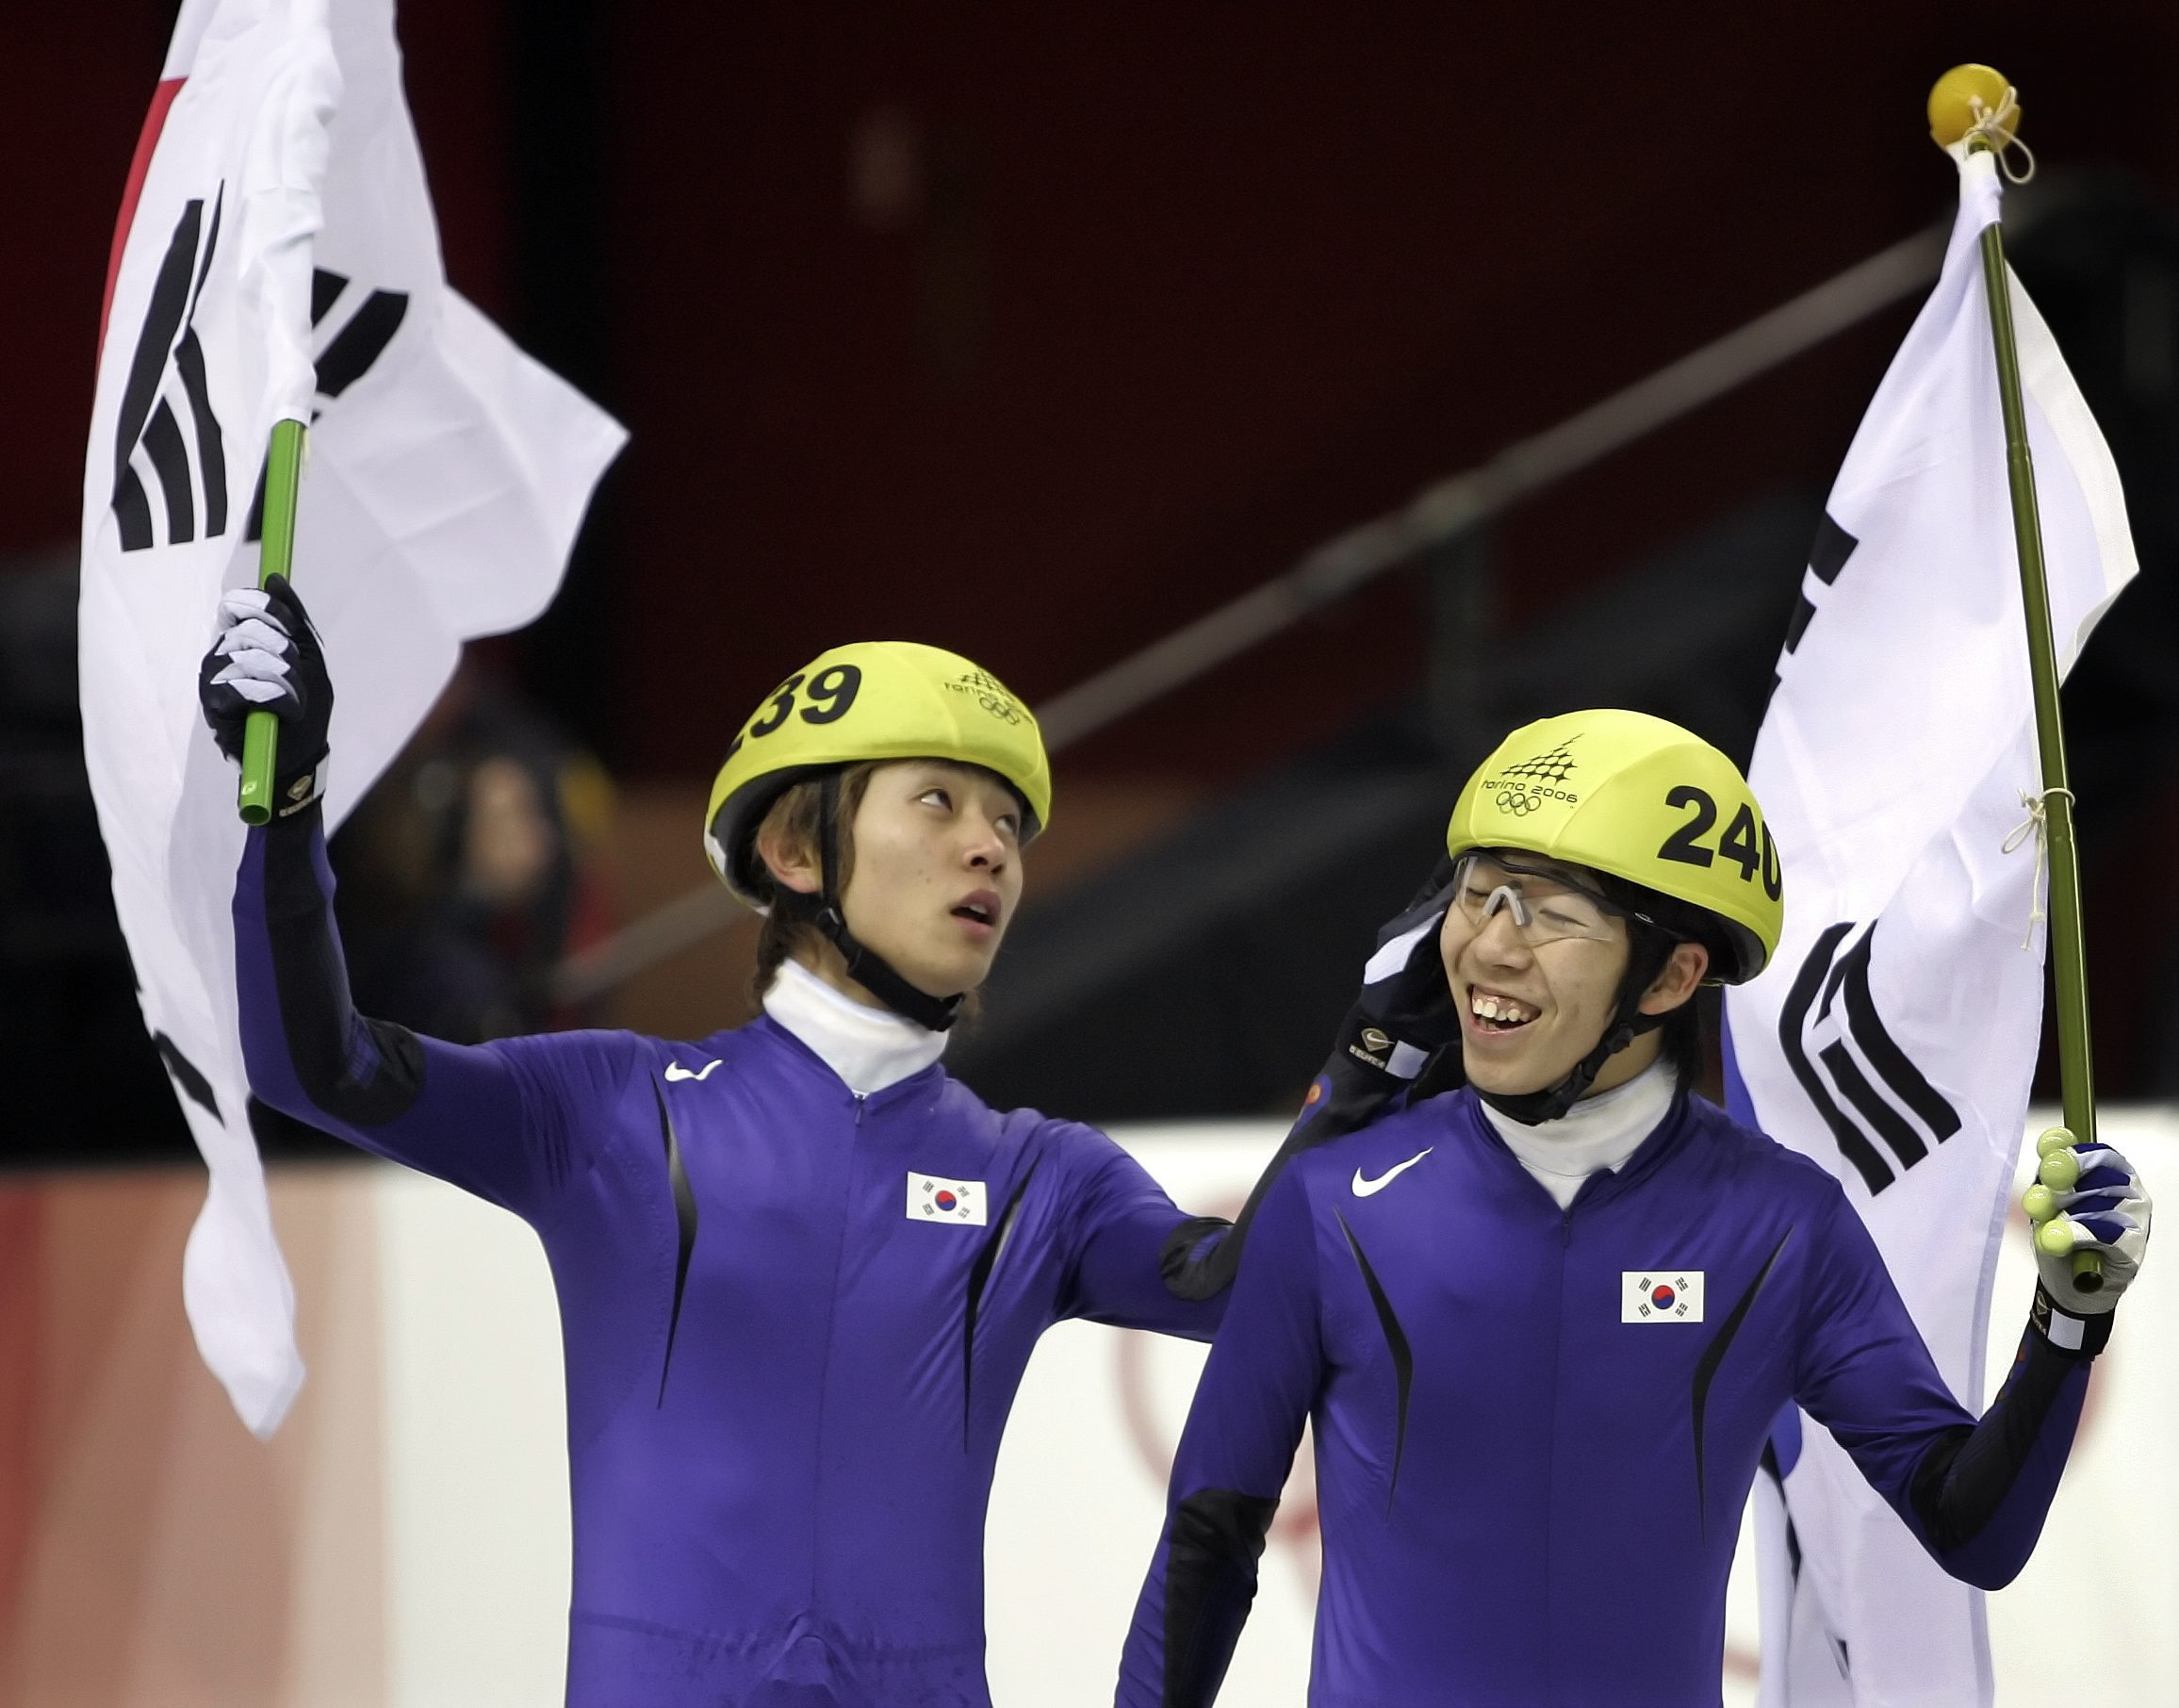 Olympic gold medalist Korea's Ahn Hyun-Soo, left, congratulates his teammate silver medalist Lee Ho-Suk after Hyun-So's gold medal victory in the Men's Short Track Speedskating 1500 meter race at the Turin 2006 Winter Olympic Games in Turin, Italy, Sunday, Feb. 12, 2006. (AP Photo/Eric Gay)